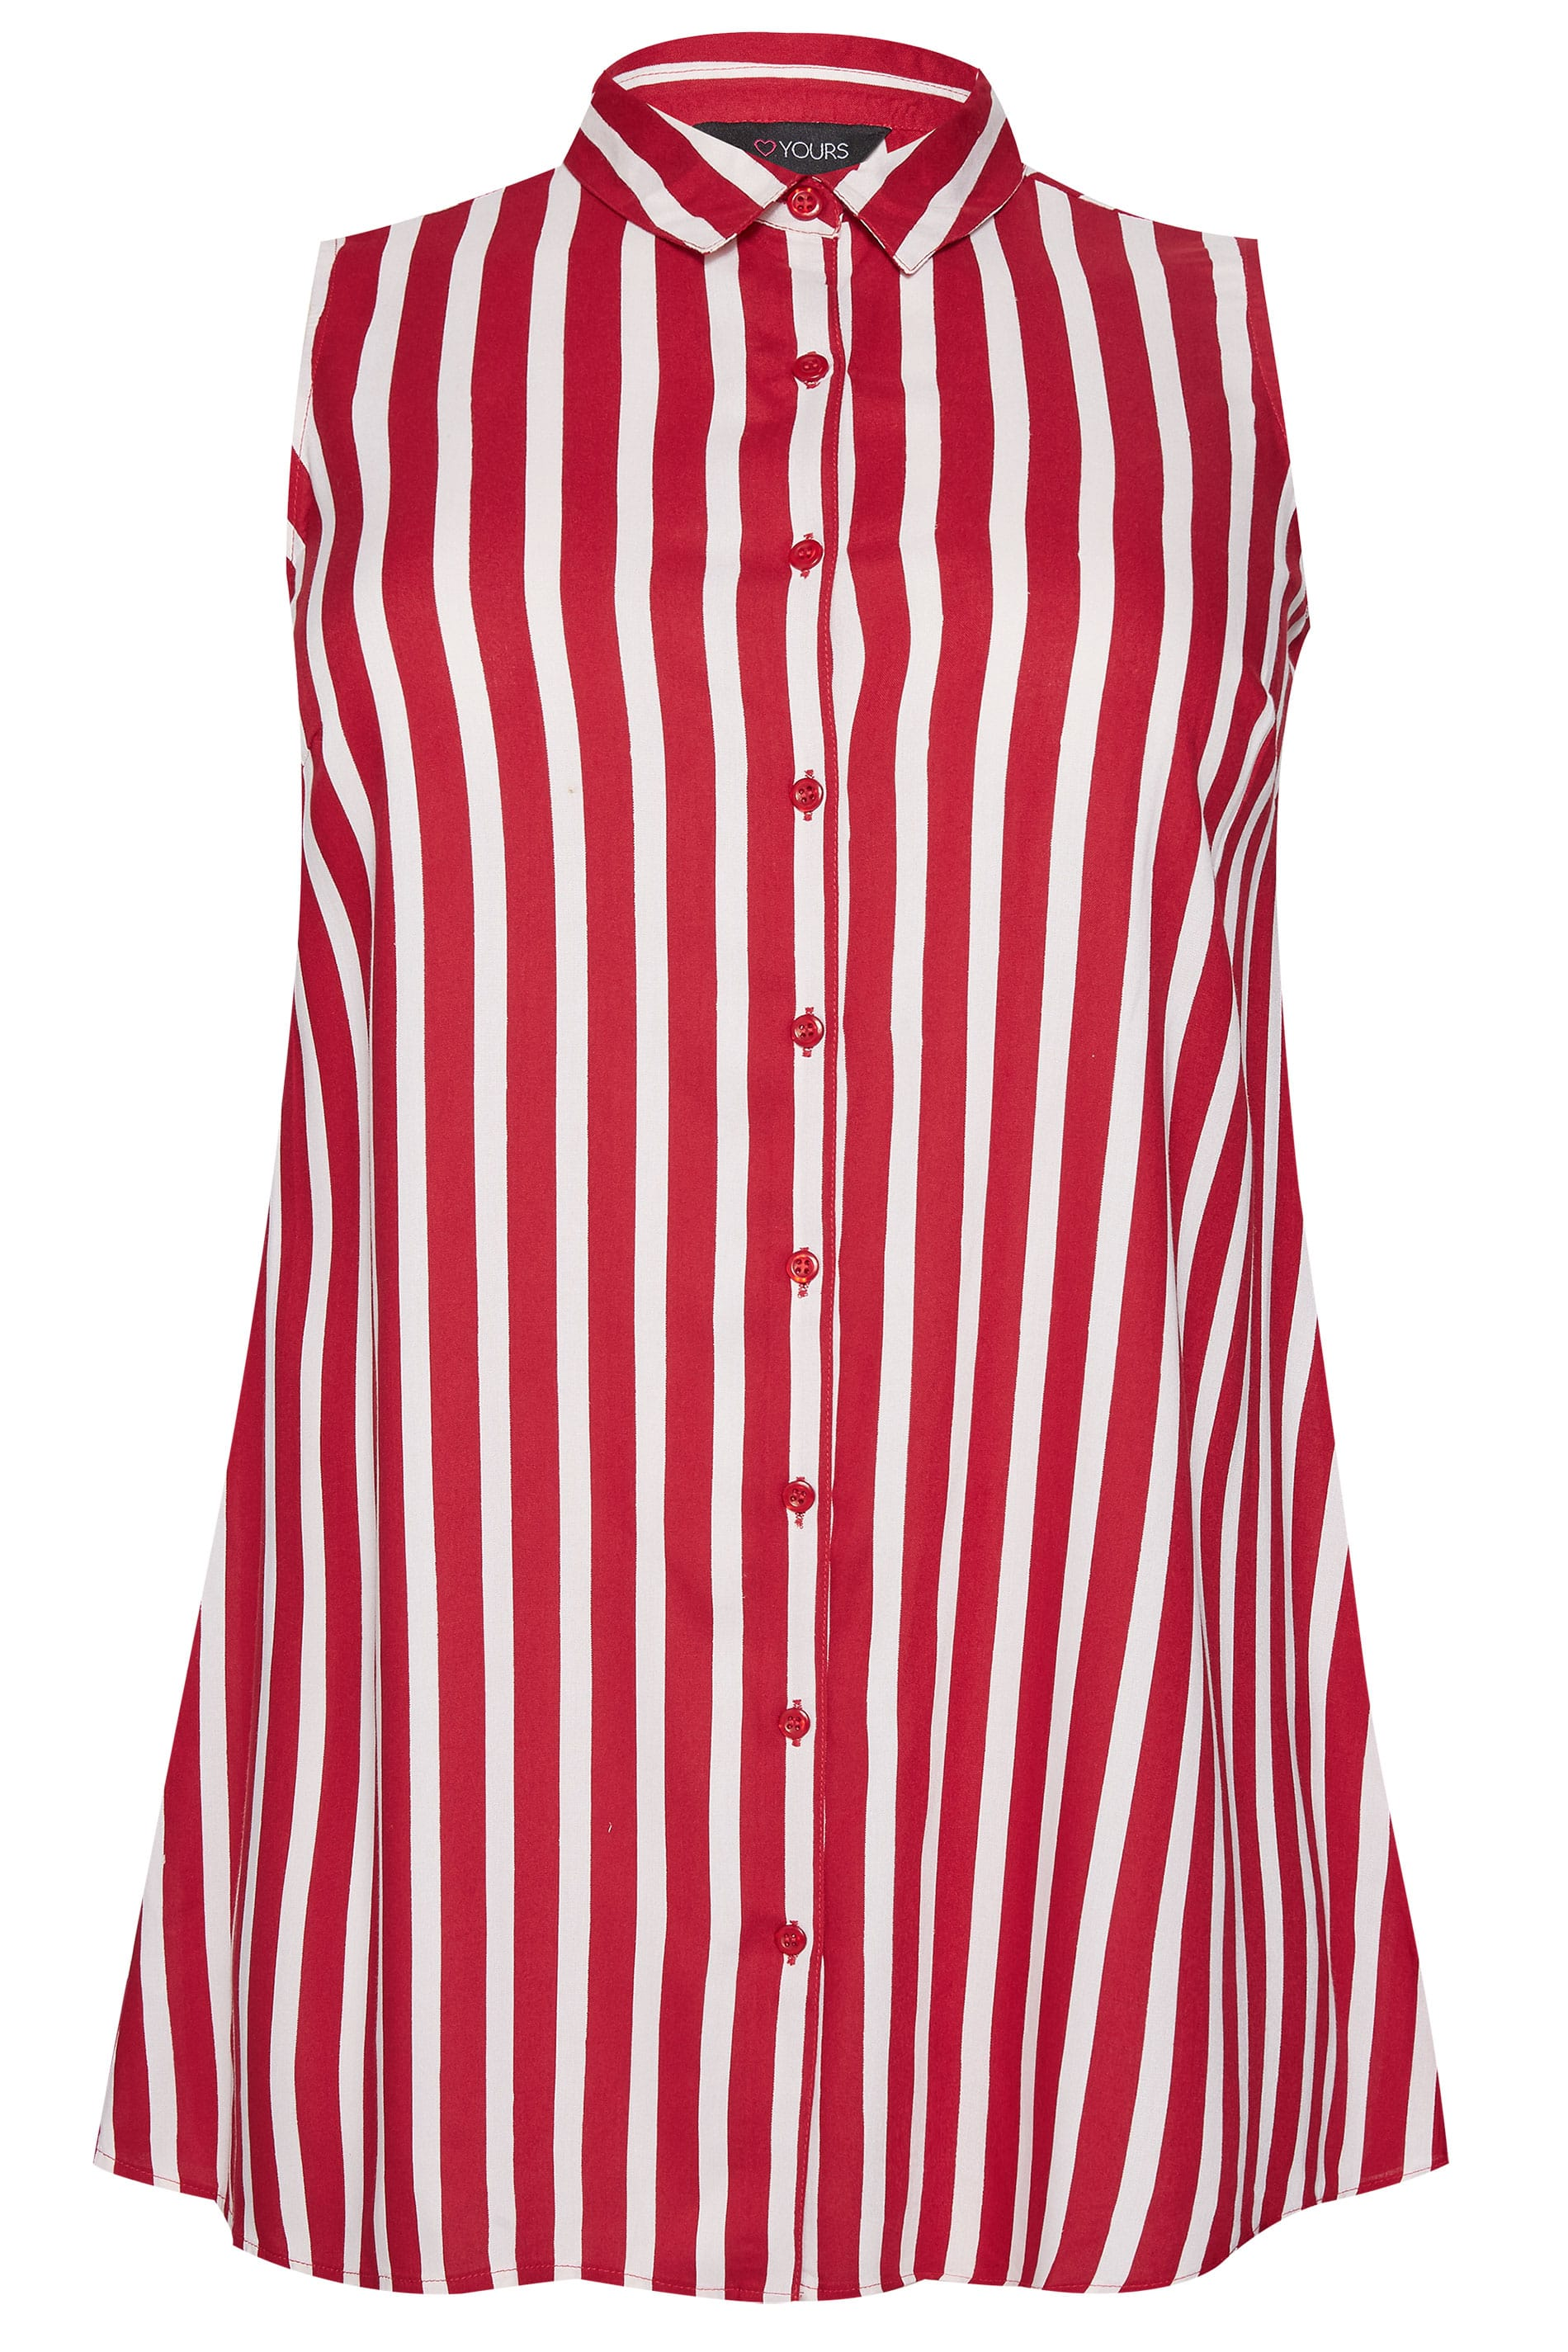 2c288c7f0 Red Button Up Sleeveless Shirt | Sizes 16-36 | Yours Clothing